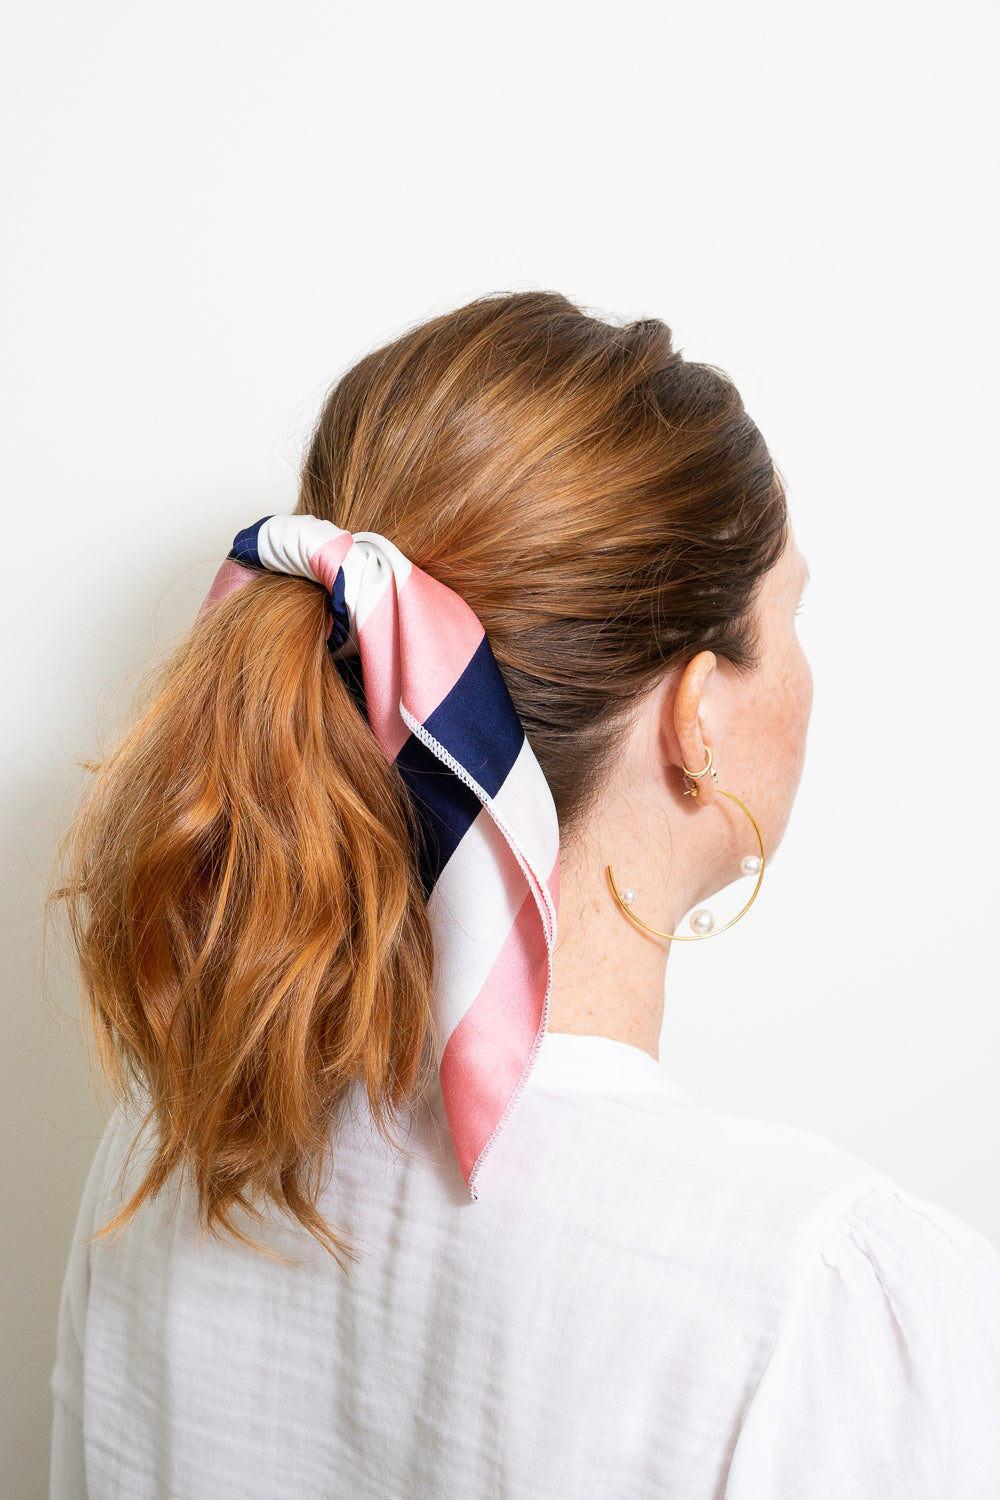 red head with pink navy white striped hair scarf tied in hair ponytail hoop earrings Janna Conne